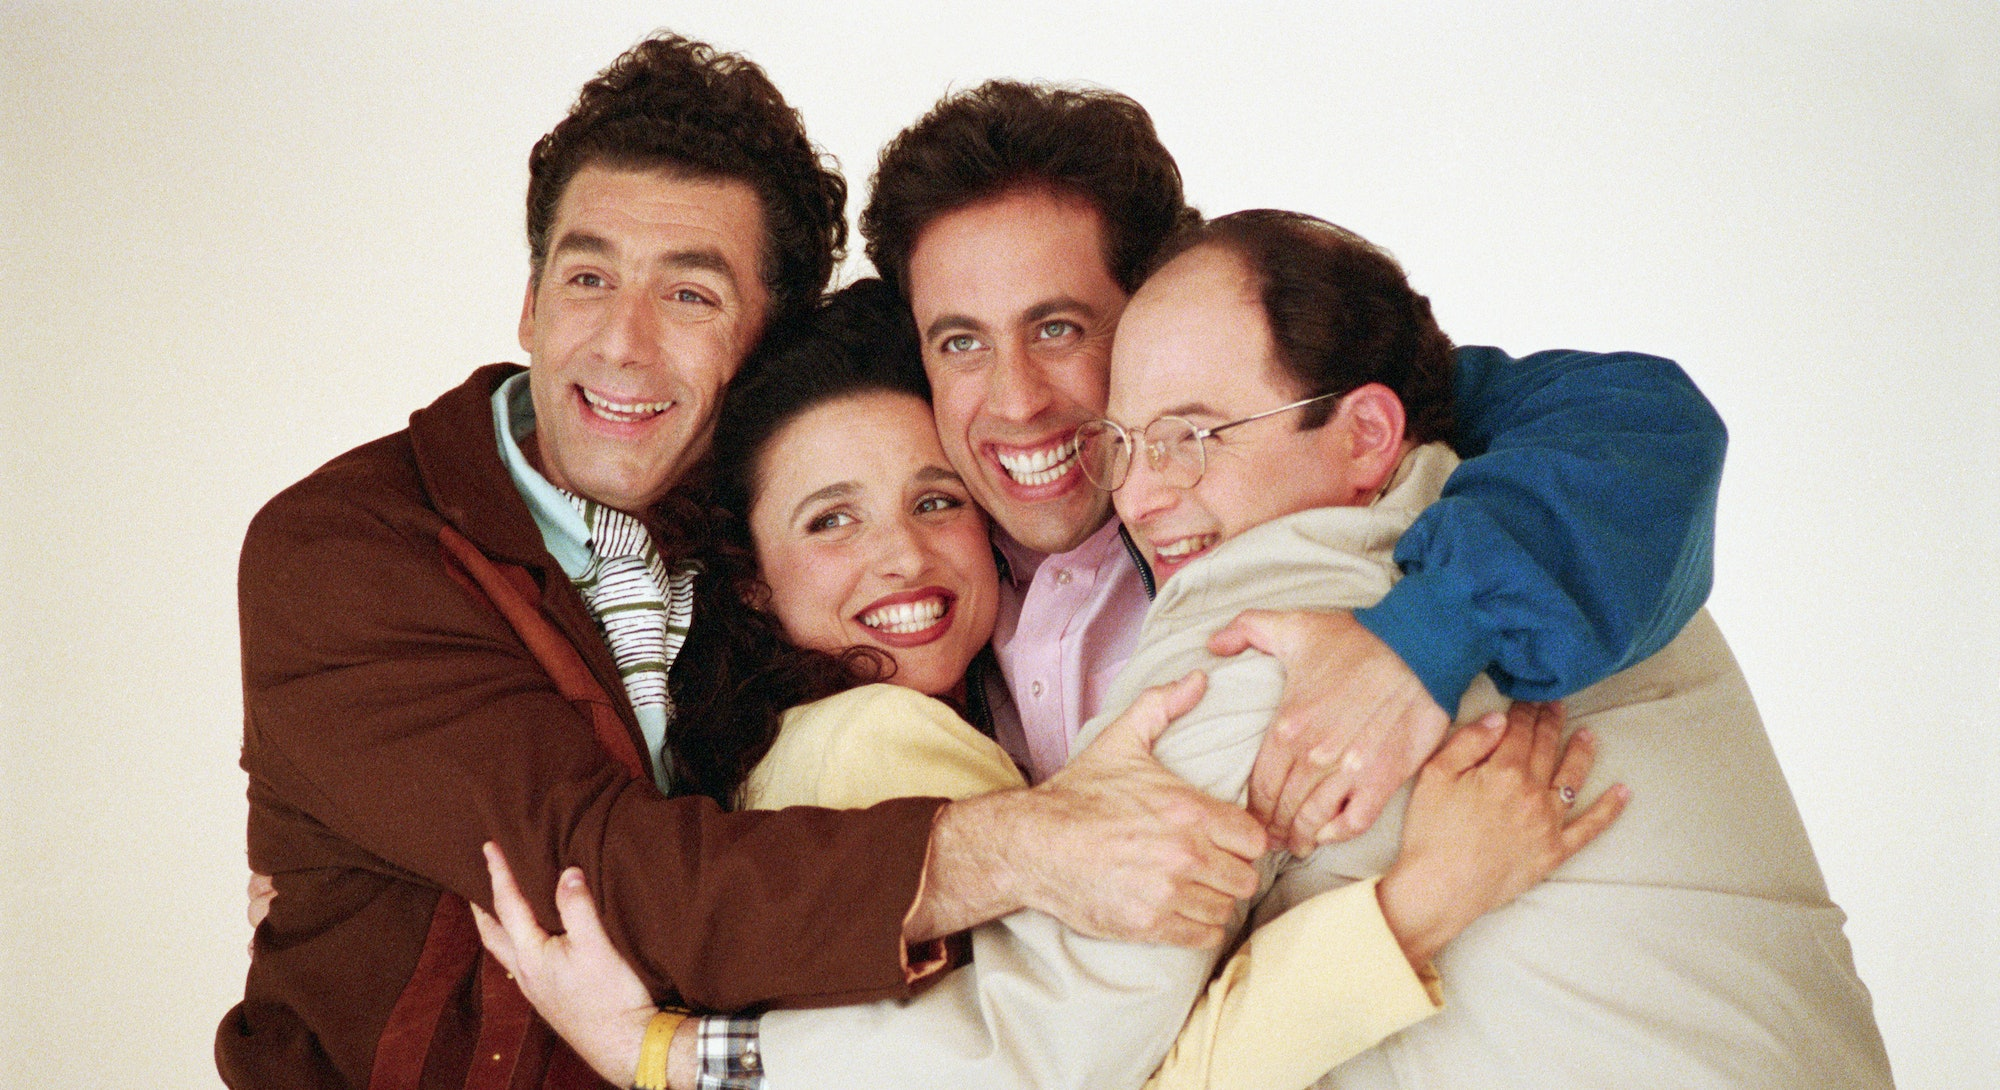 The cast of Seinfeld poses for a promotional image during the '90s sitcom's run.